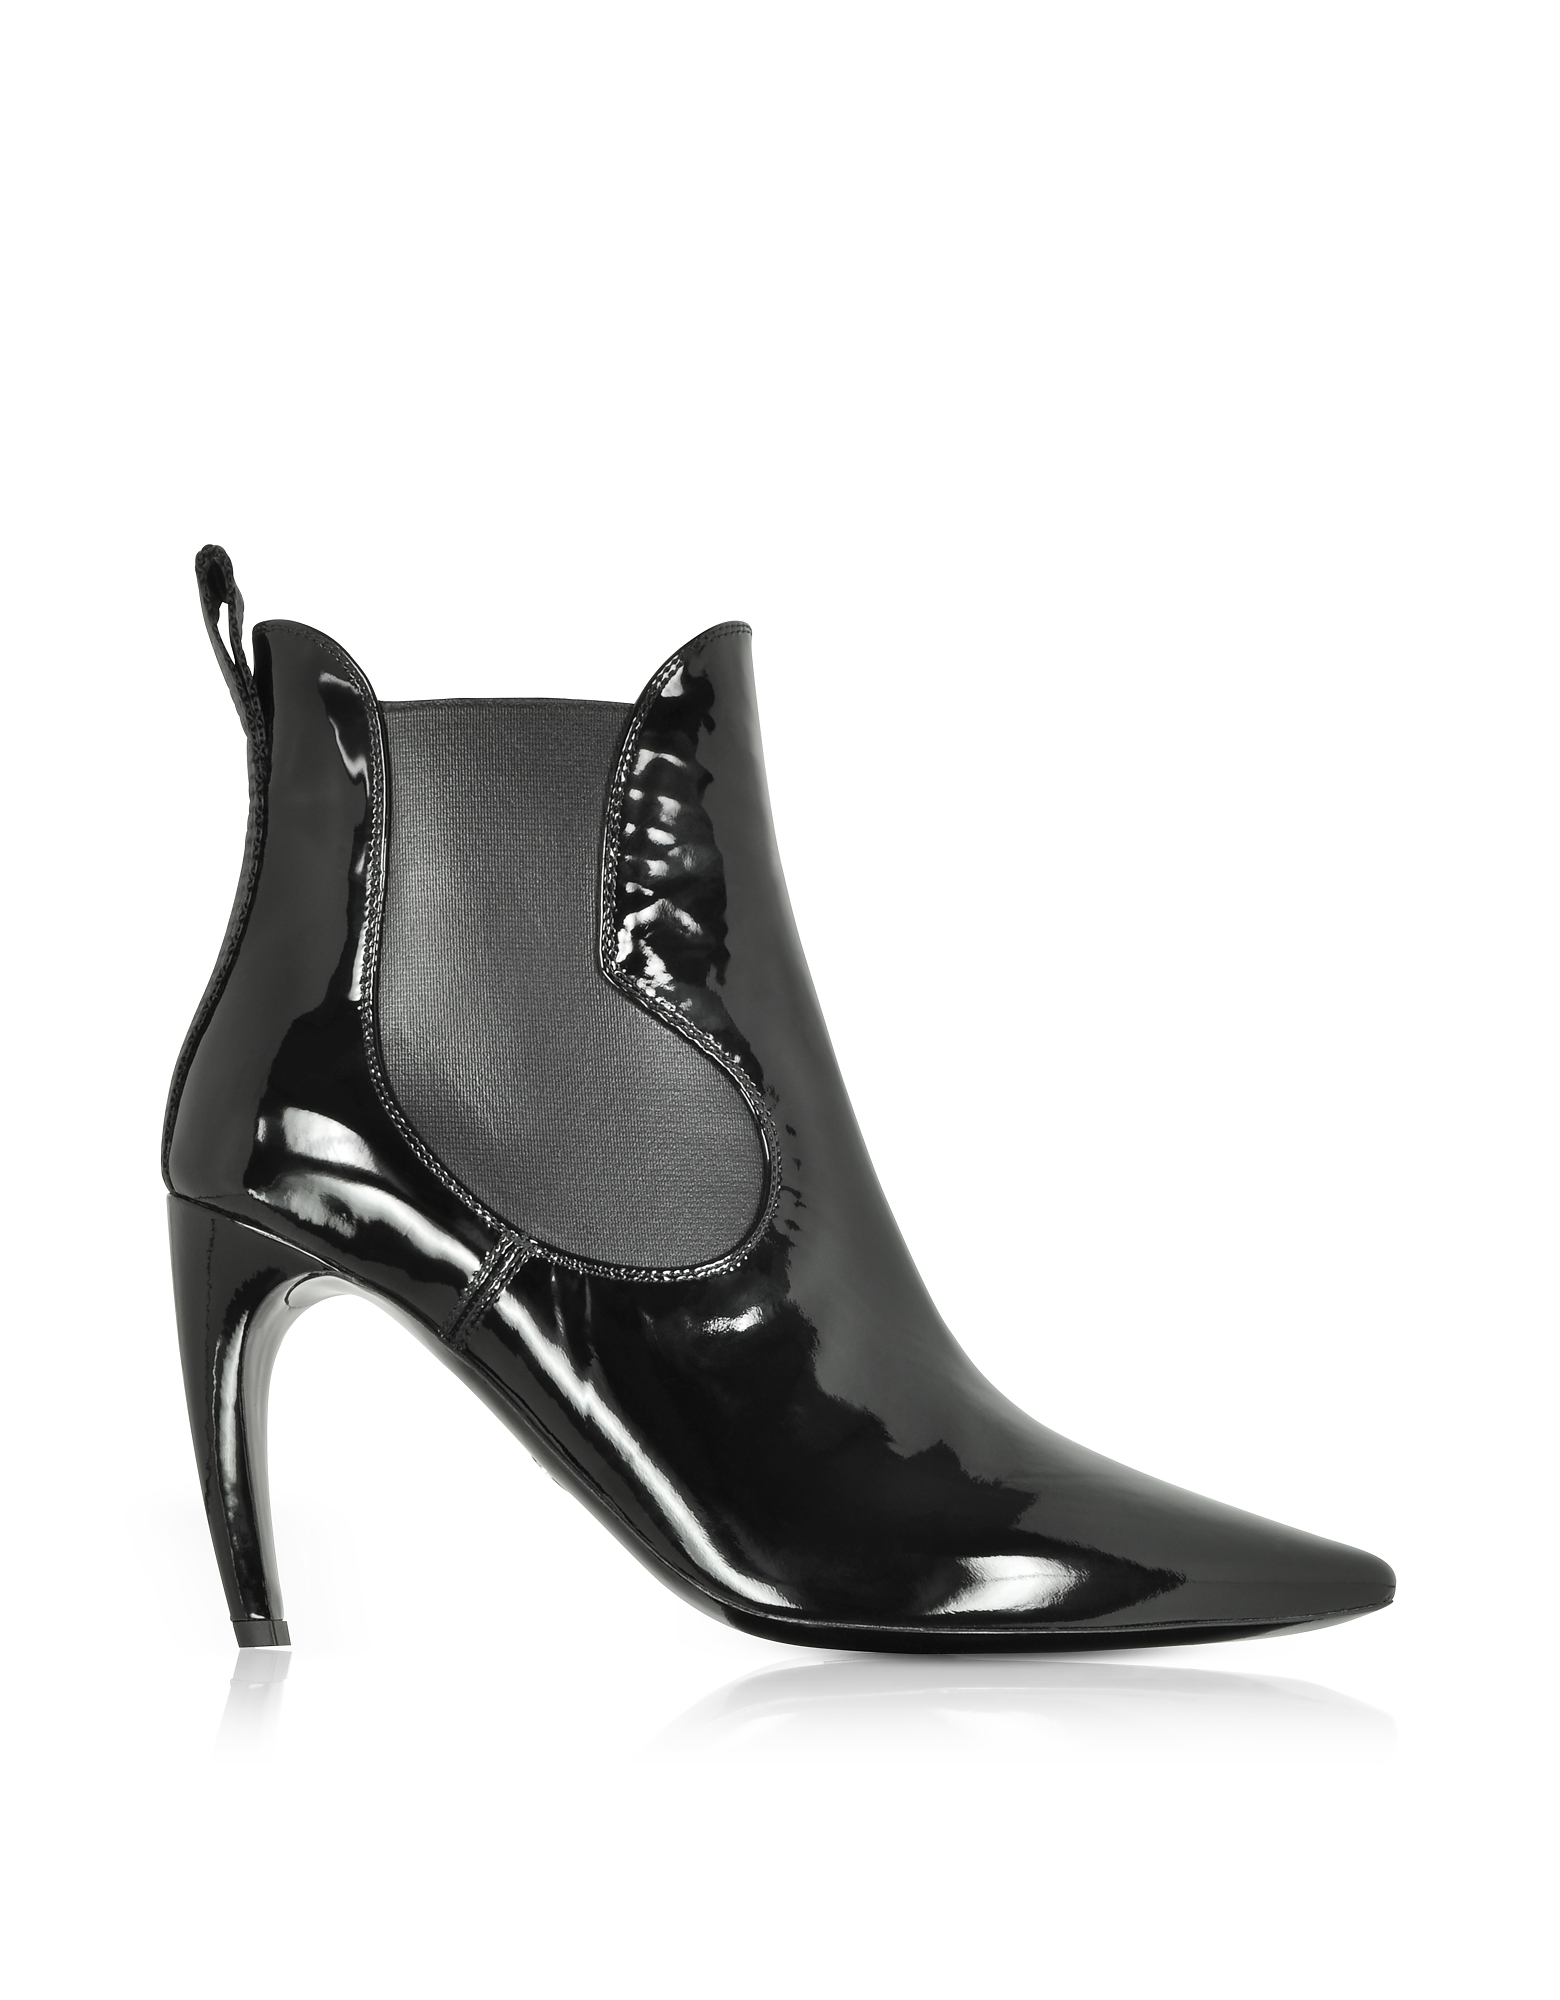 Proenza Schouler Shoes, Black Patent Leather Boots